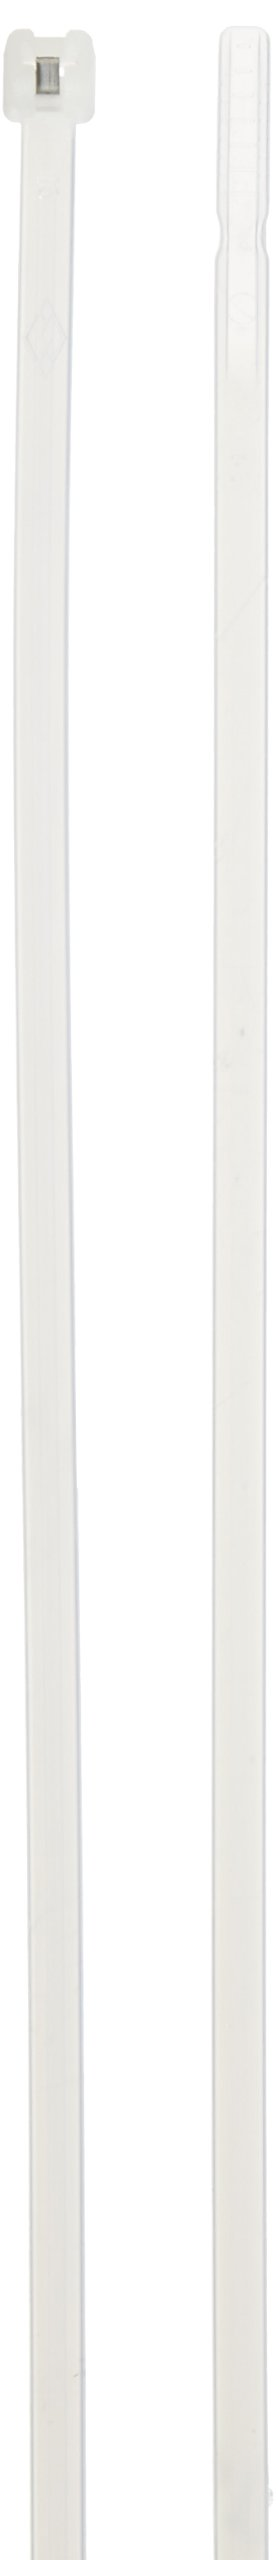 Cable Tie with Stainless Steel Barb, 50 Tensile Strength, 11'' Length, Natural